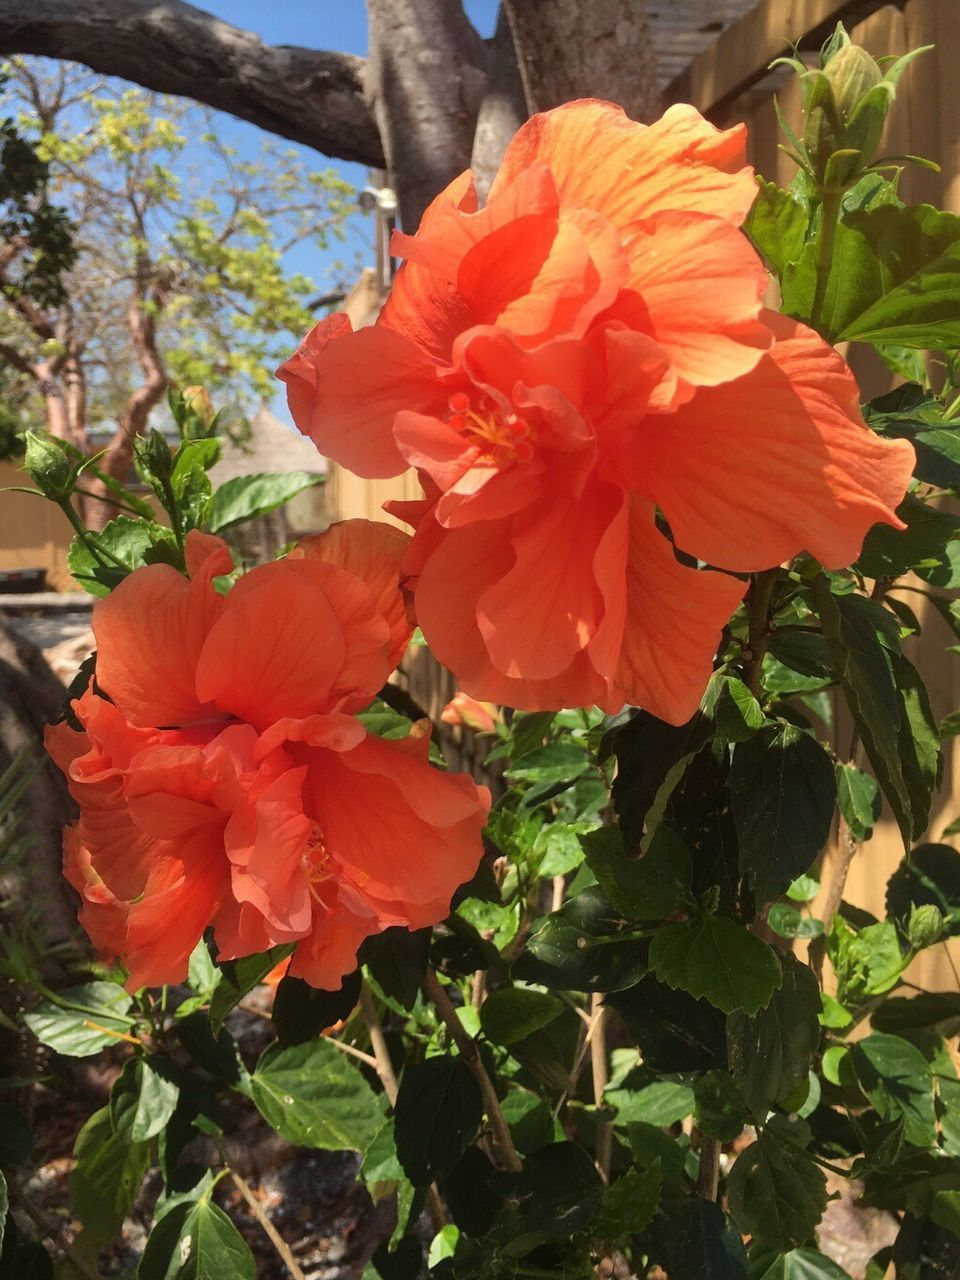 flower, beauty in nature, petal, growth, nature, flower head, fragility, no people, orange color, plant, freshness, outdoors, day, blooming, stamen, hibiscus, close-up, tree